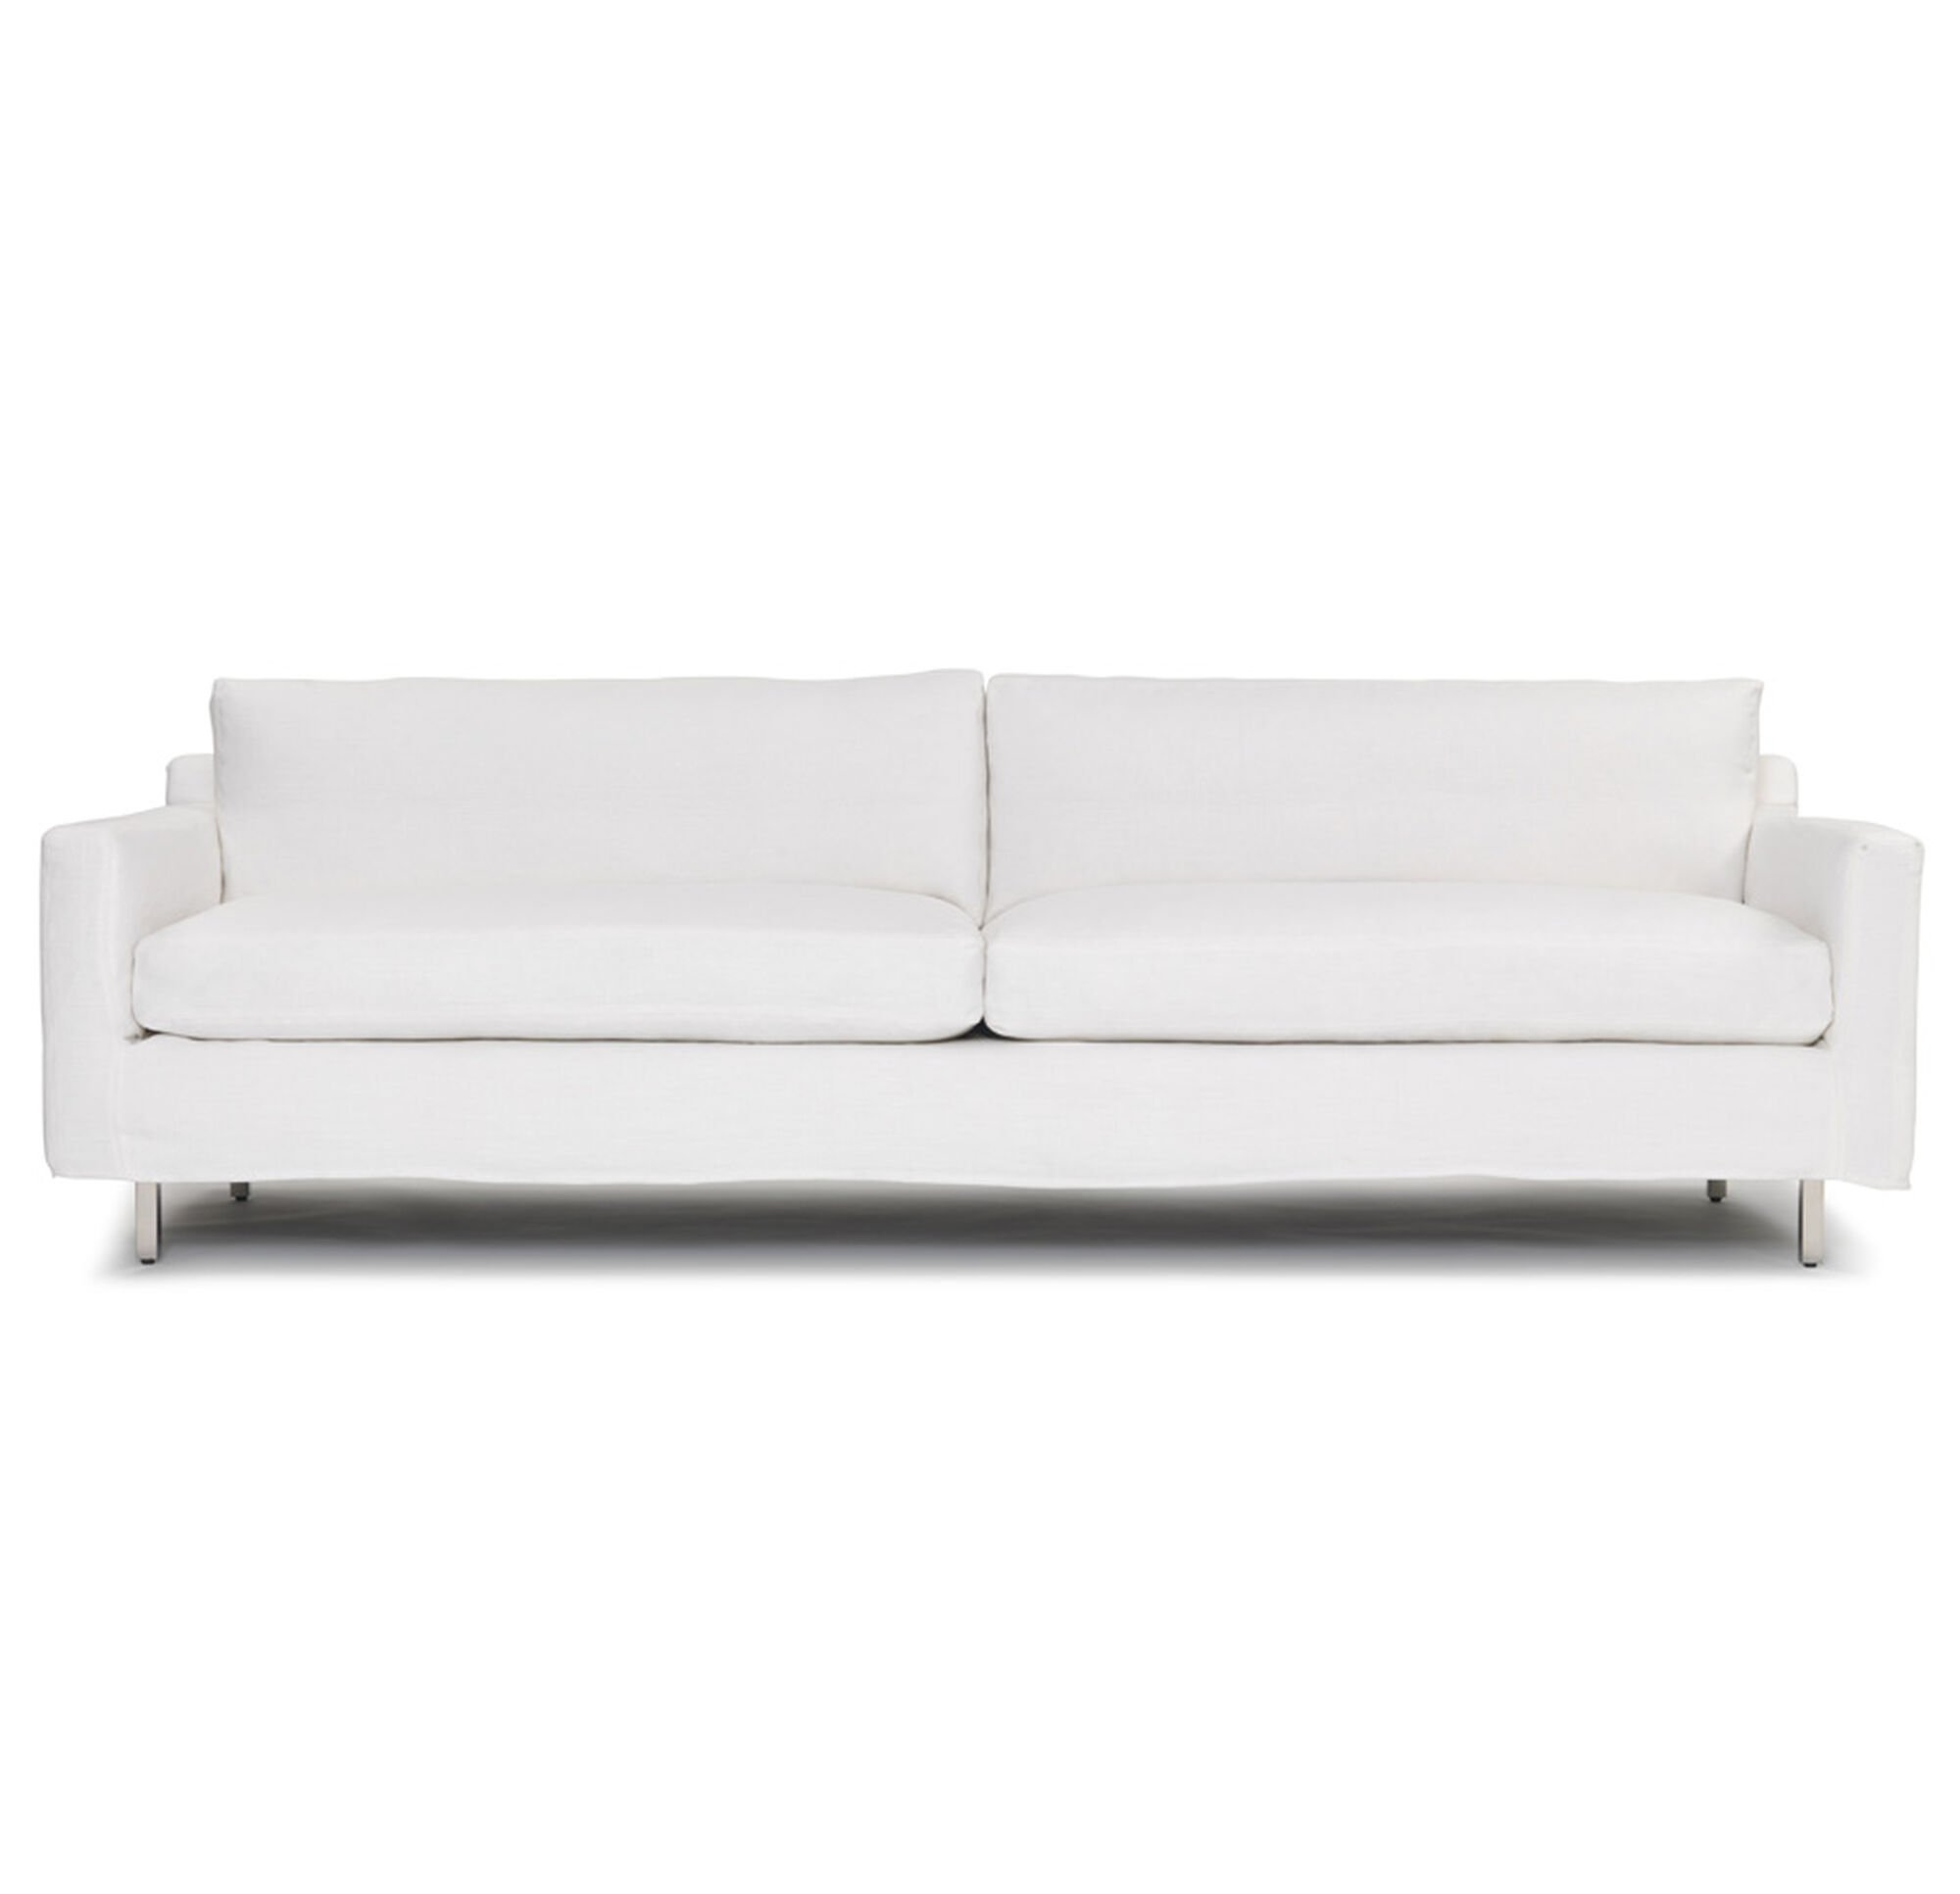 silver slipcover louis sofas front seating sofa camille